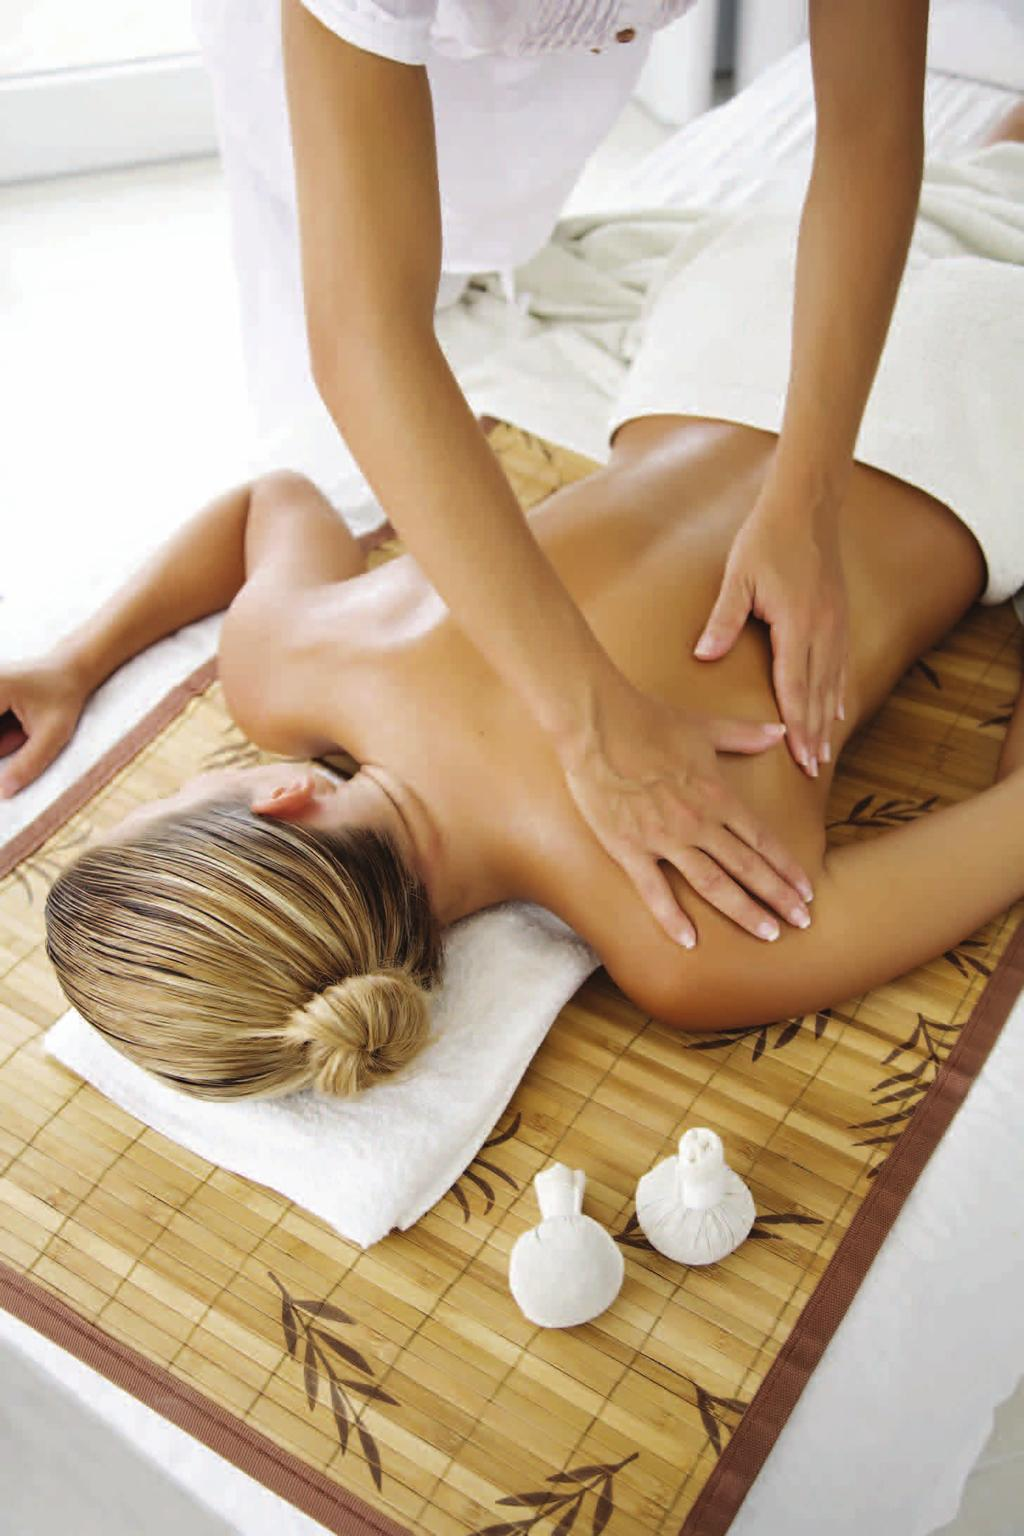 Whether you wish to feel relaxed, rejuvenated or energized, our